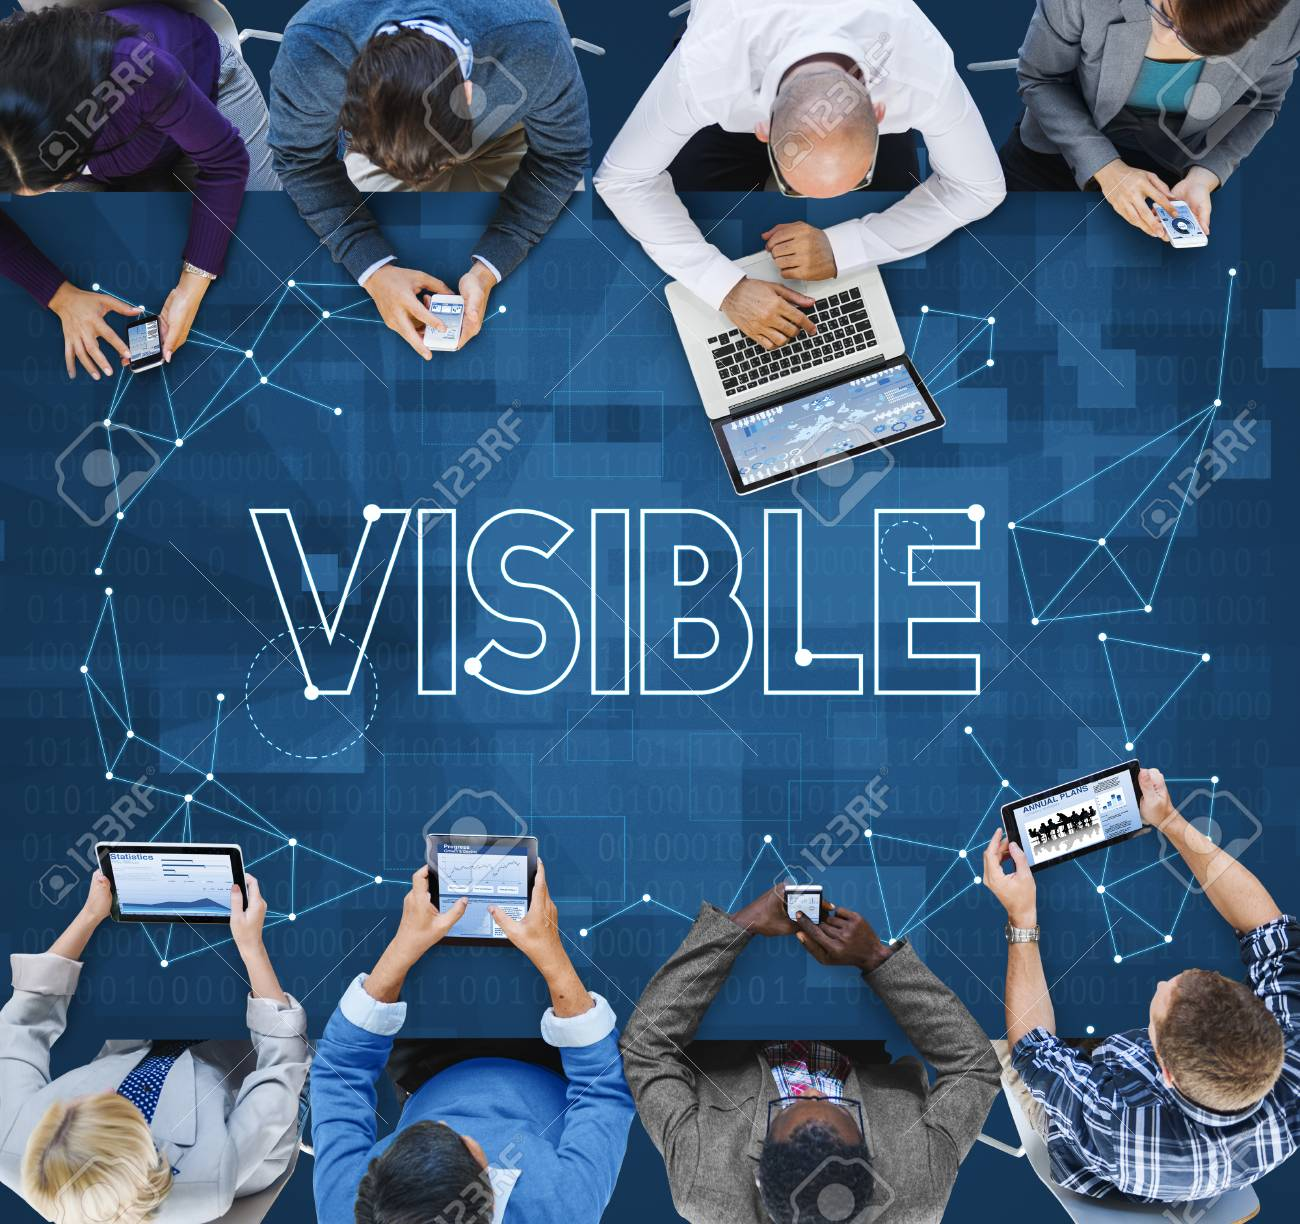 Vision Visibility Observable Noticeably Graphic Concept - 59285520